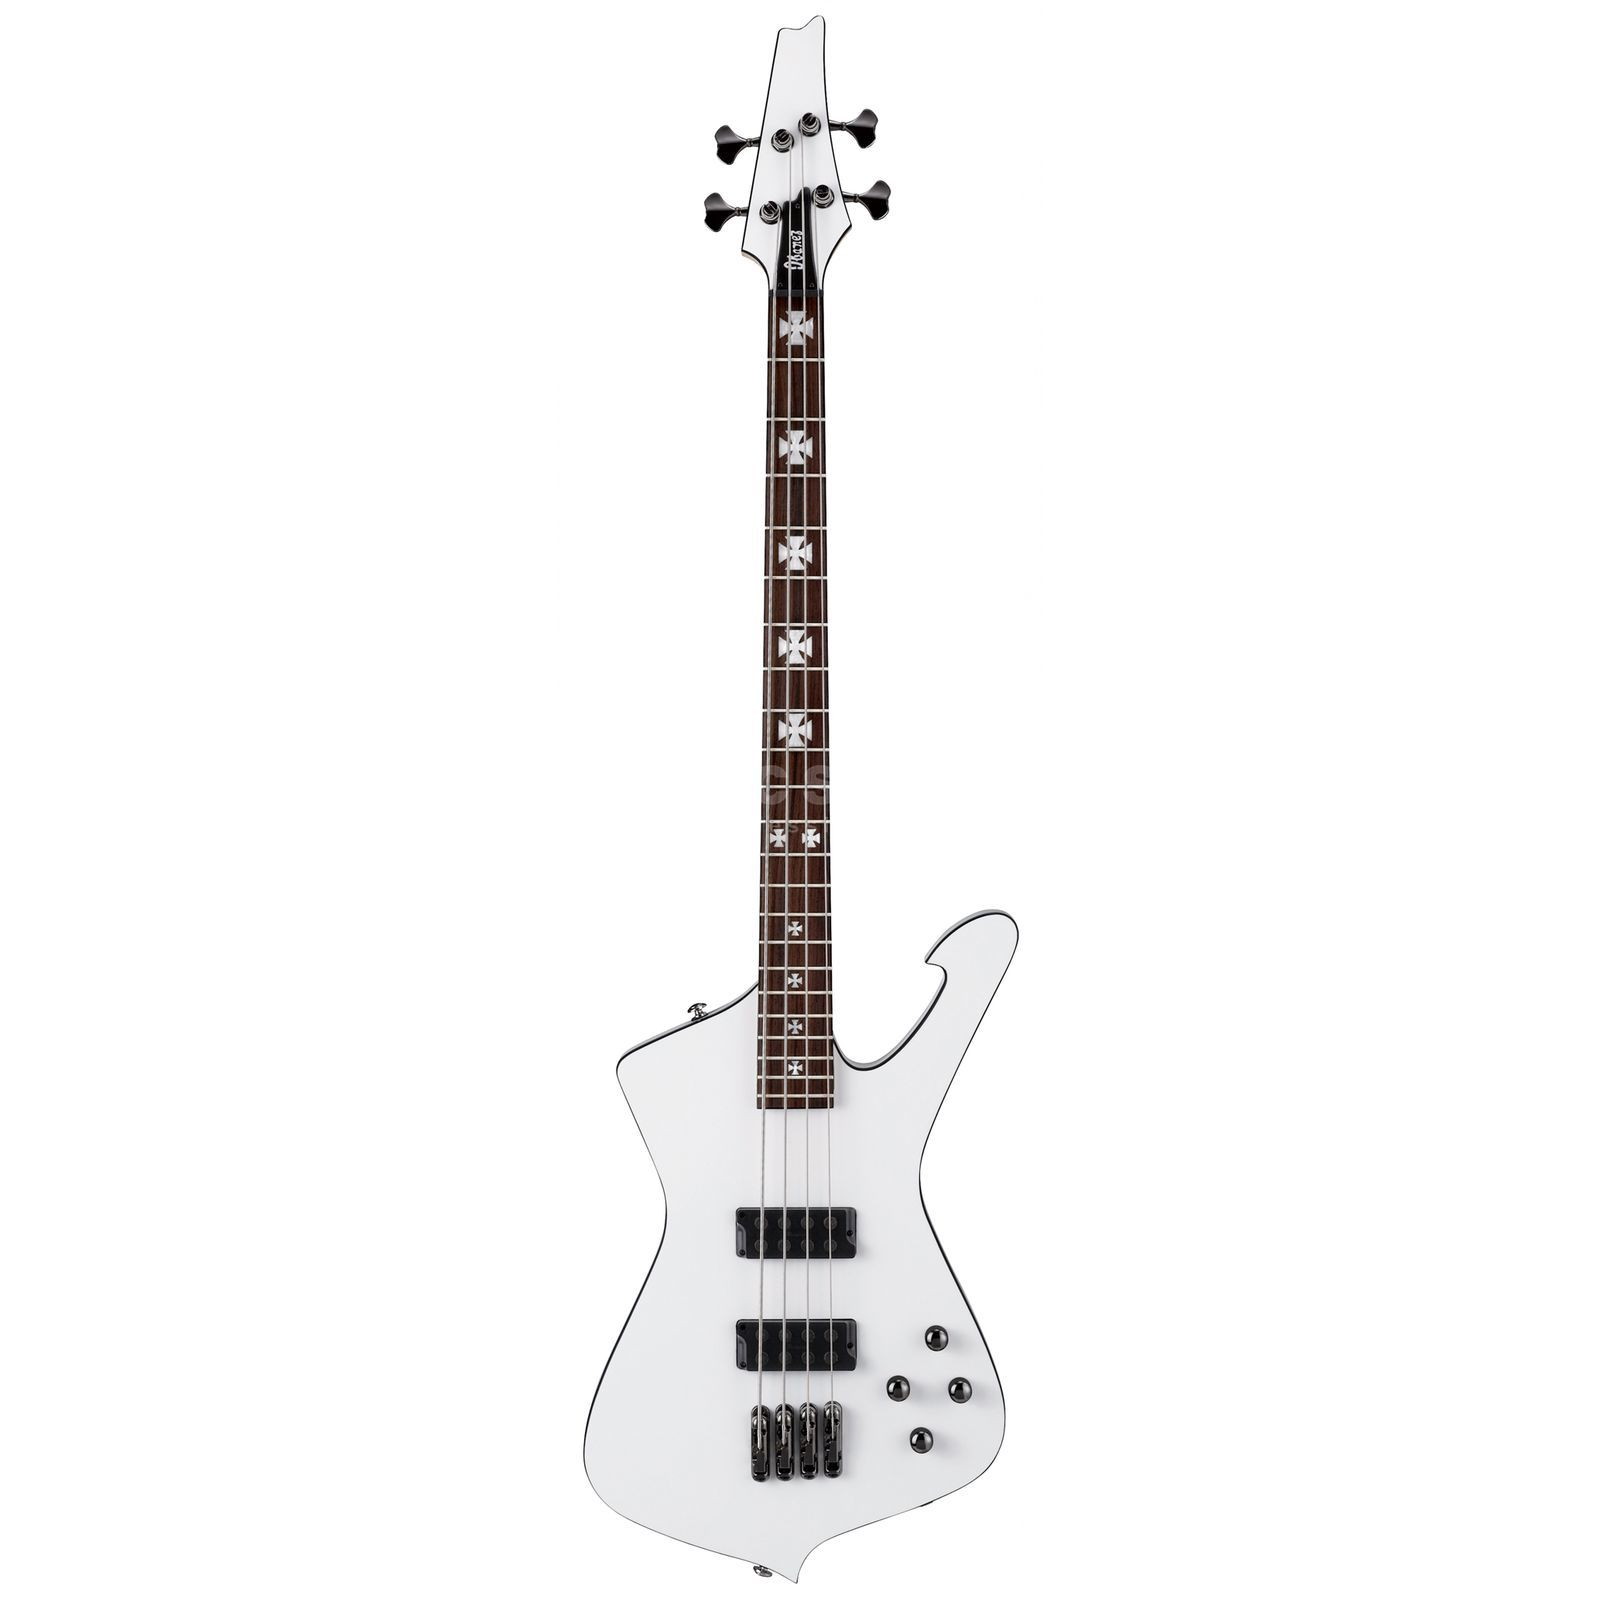 Ibanez SDB 2 Sharlee D'Angelo White Flat B-Stock Изображение товара